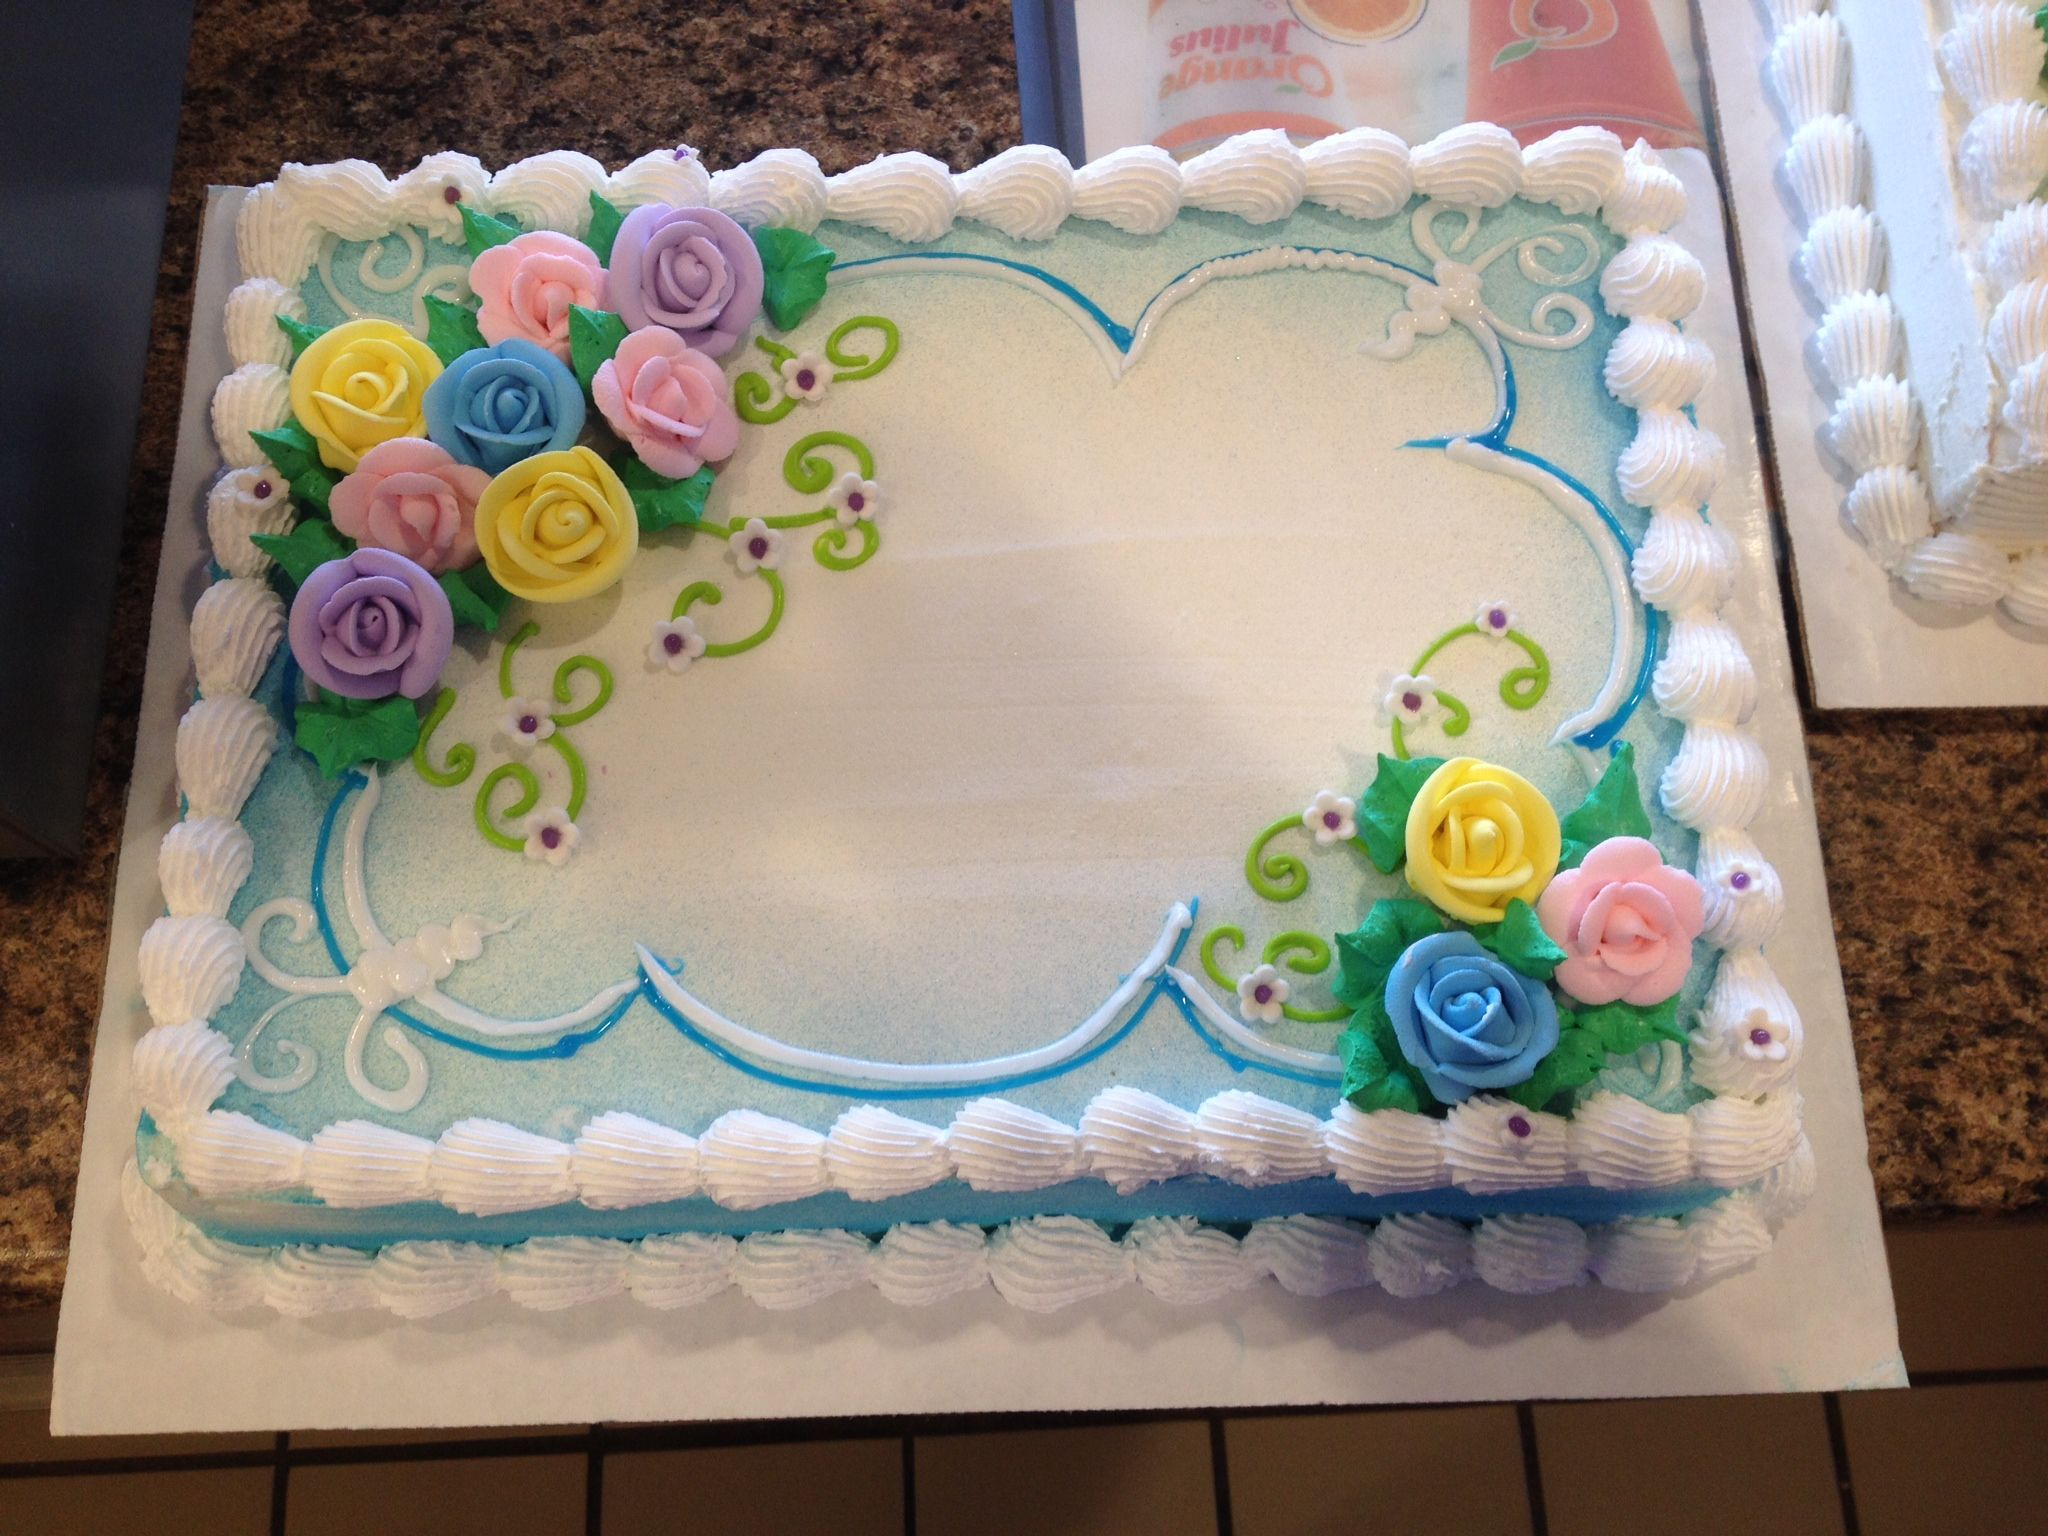 Dq Cakes Dairy Queen Floral Sheet Cake Sheet Cake Designs Cake Decorating Birthday Sheet Cakes